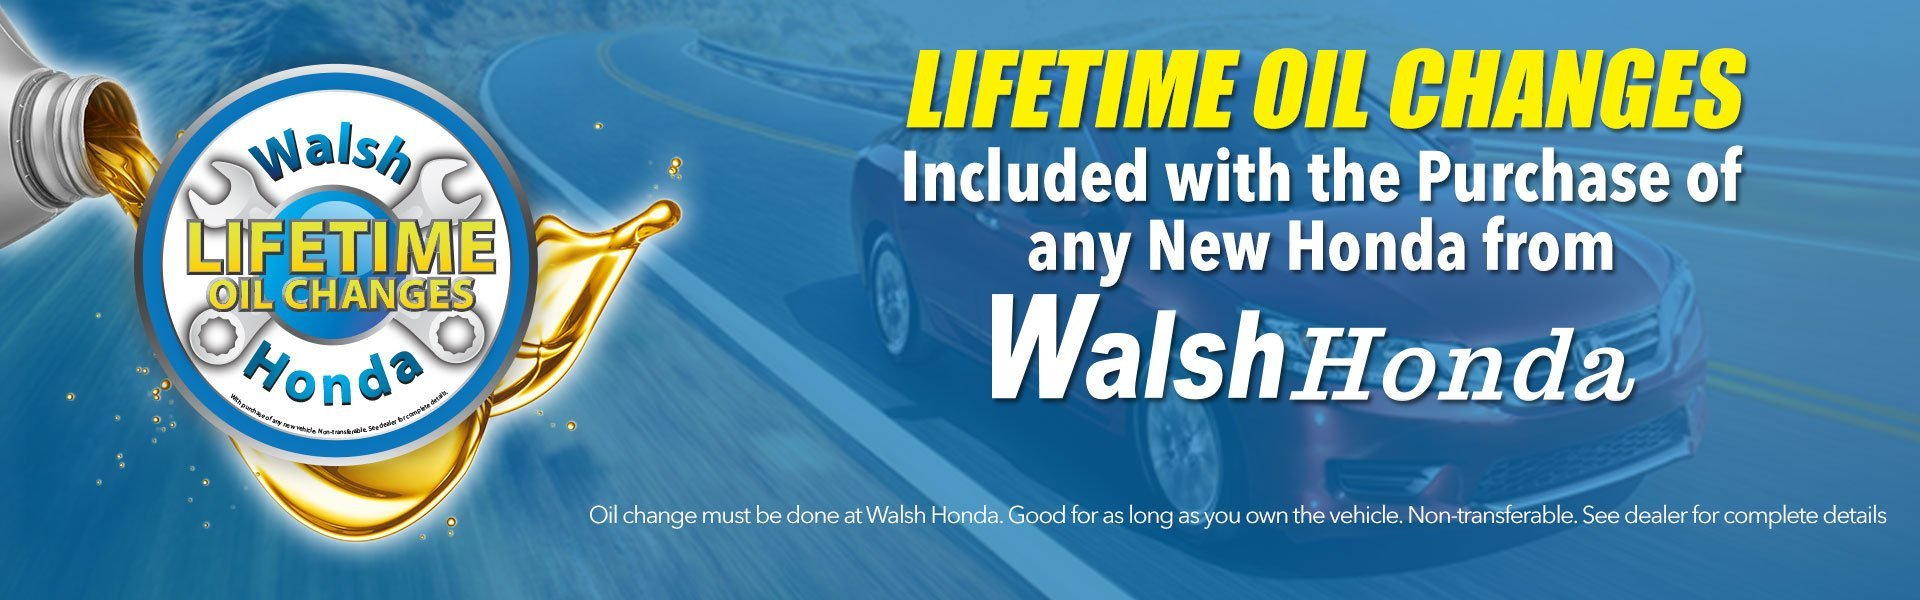 Walsh Honda Oil Change Banner